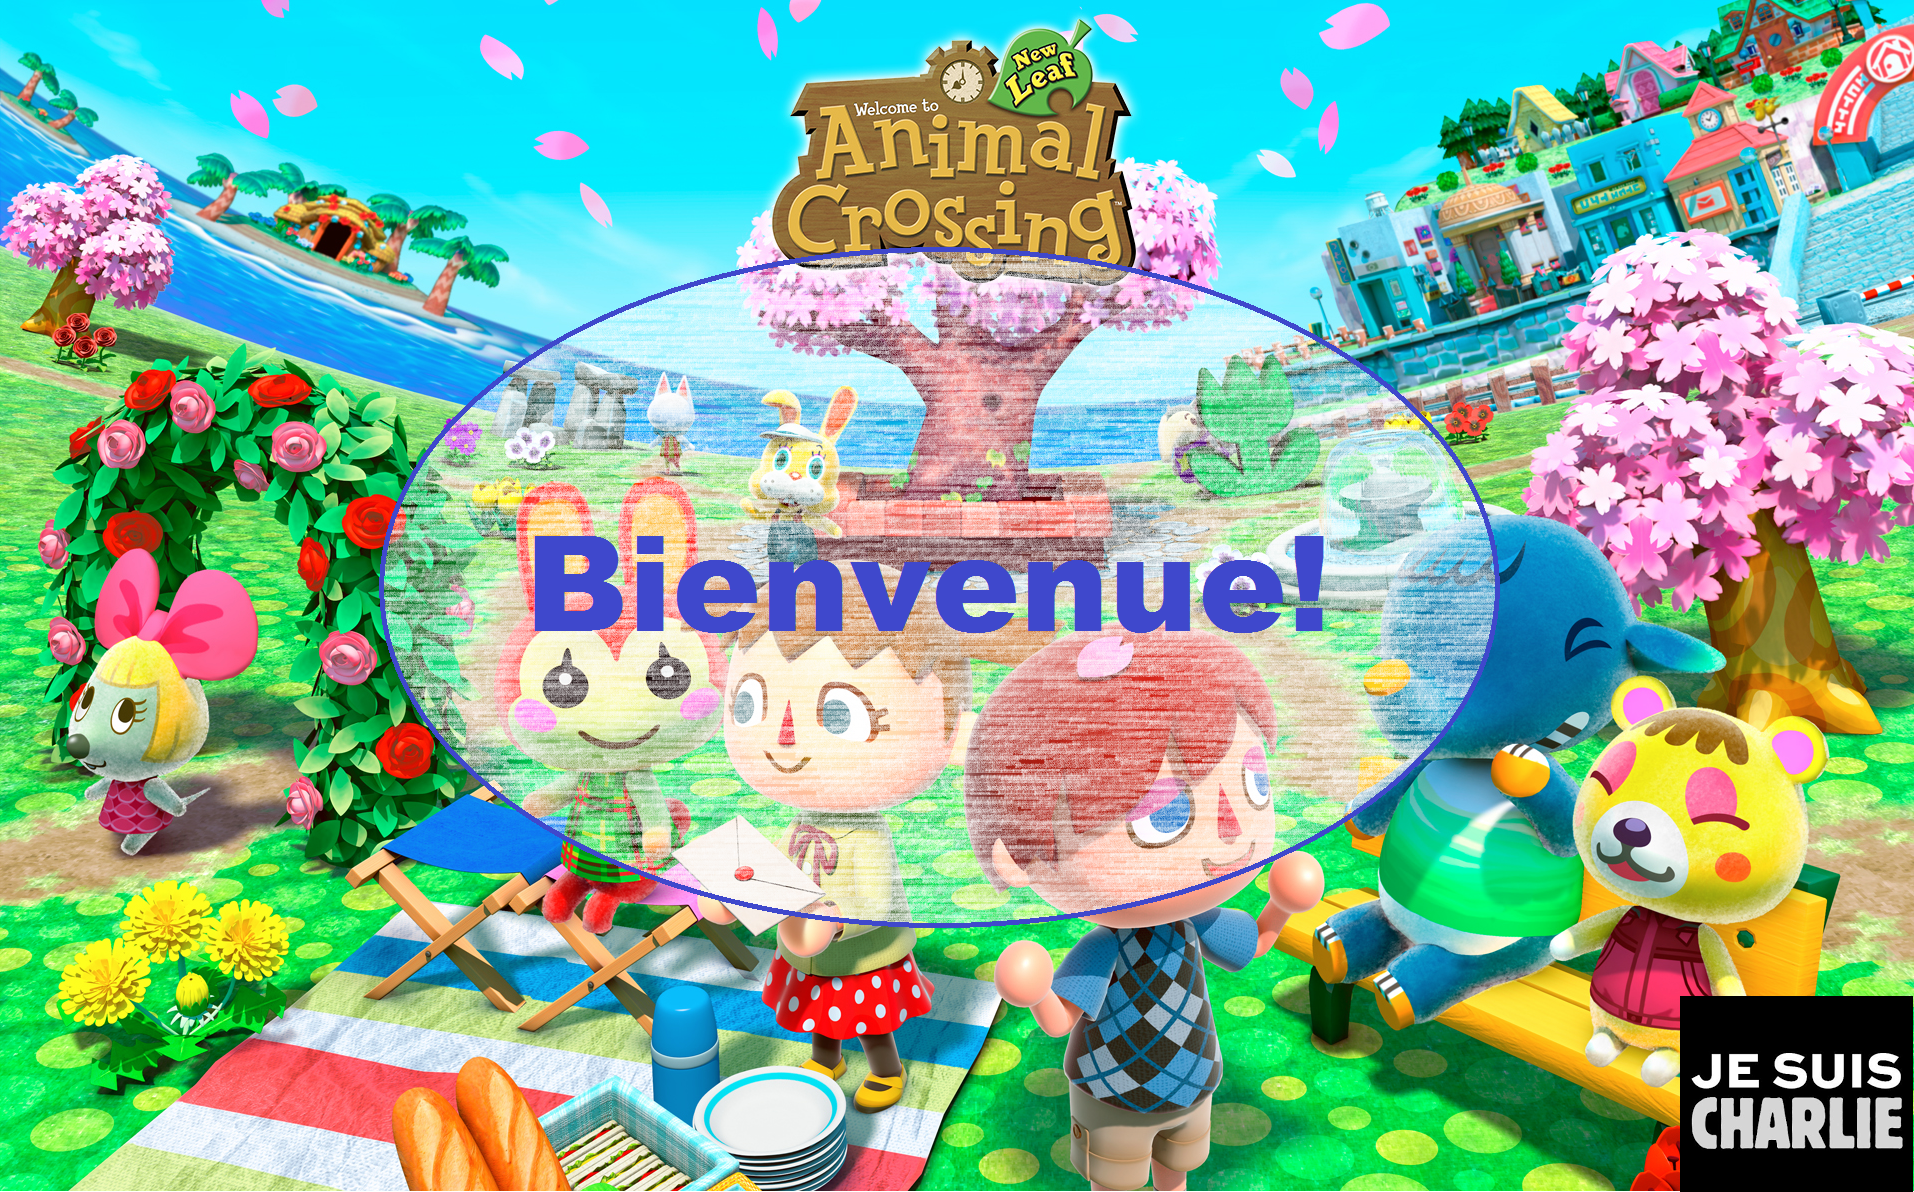 Acnl tous les messages sur acnl - Animal crossing new leaf salon de detente ...